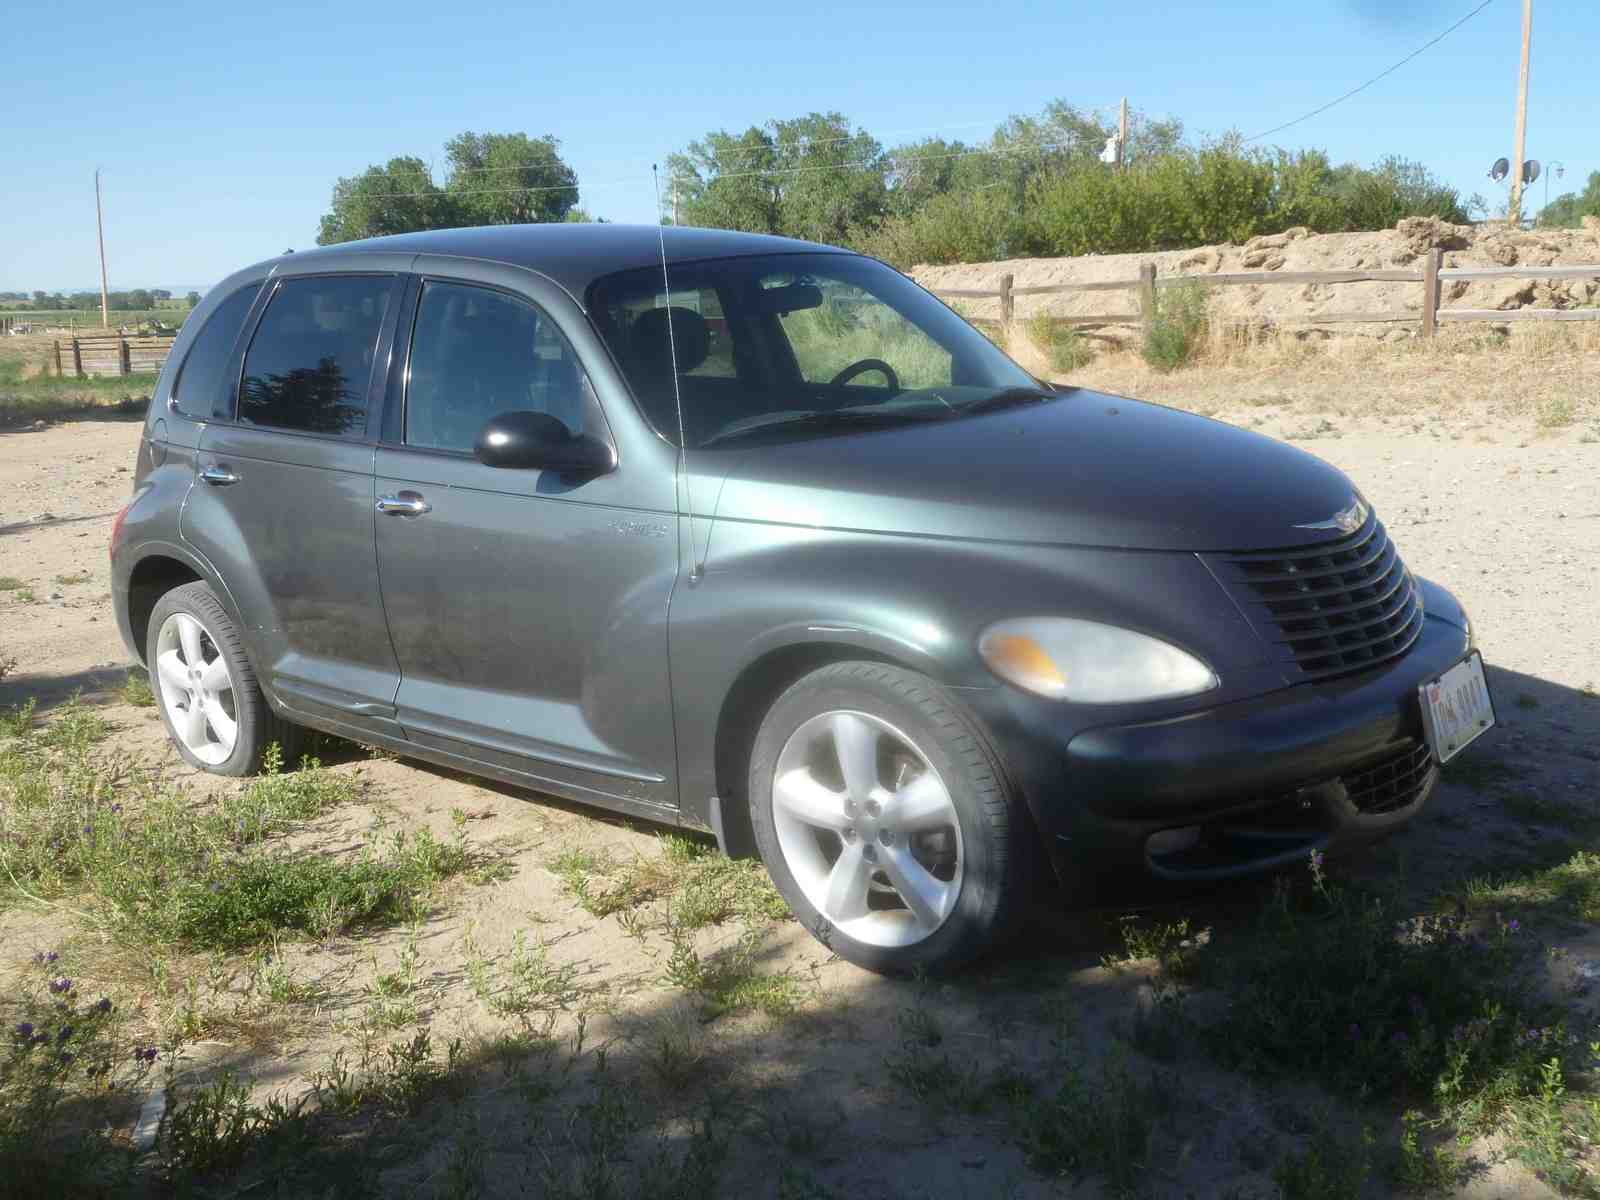 chrysler pt cruiser workshop service repair manual 2001 2004 2 000 rh  pagelarge com PT Cruiser Owner Manual PT Cruiser Owner Manual